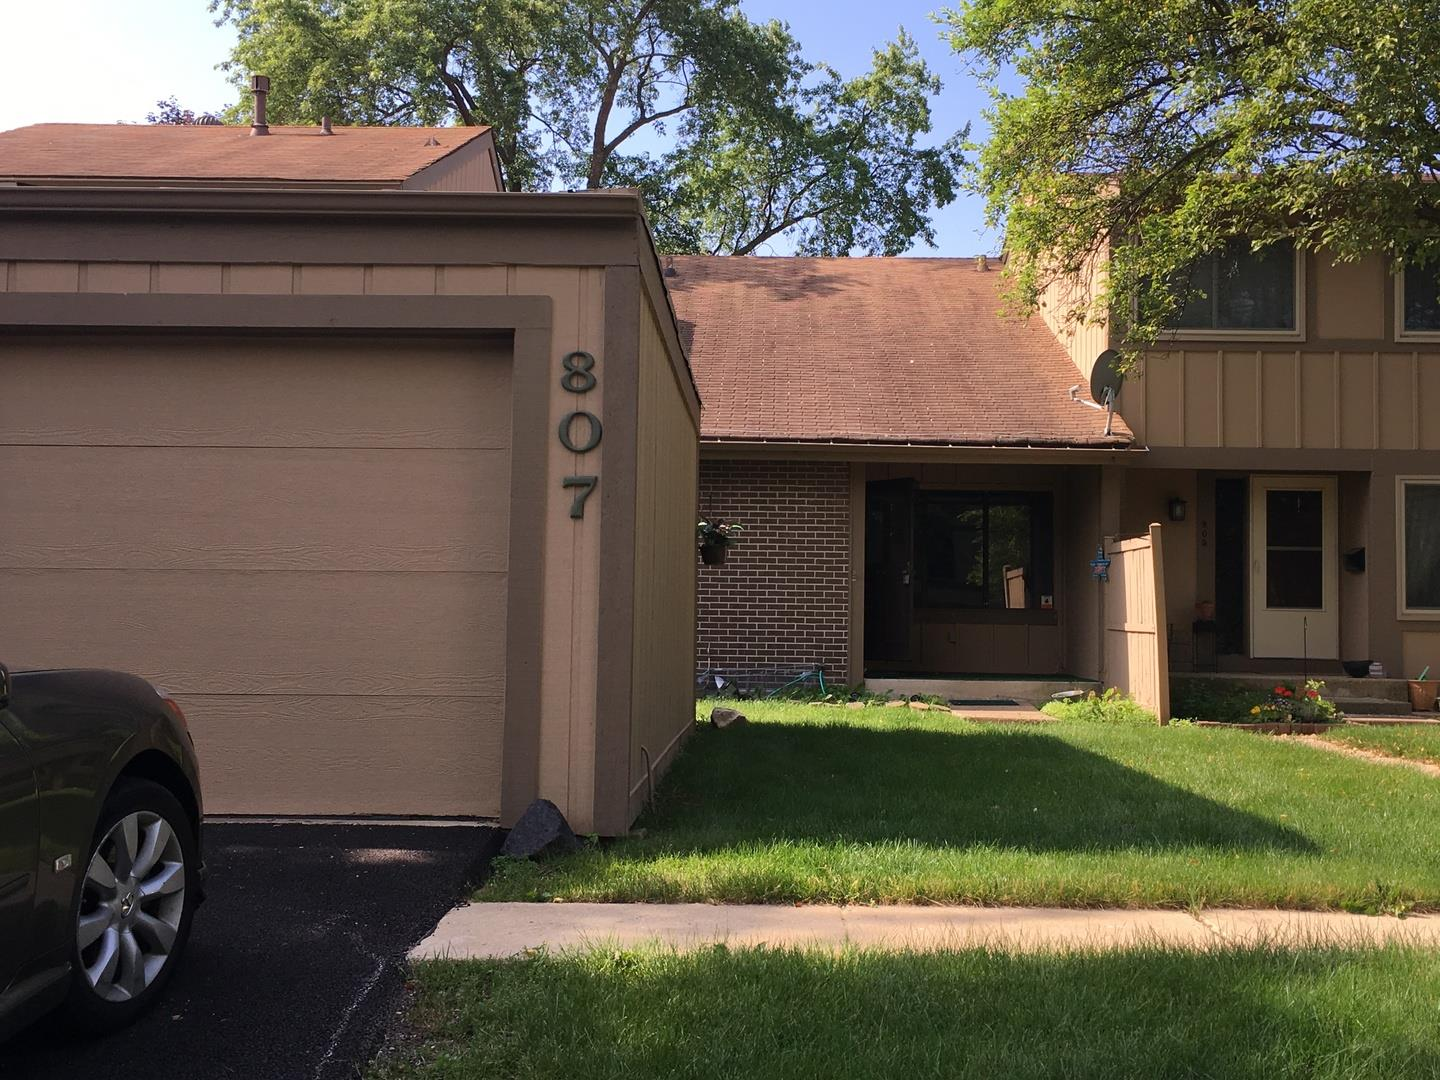 807 OVERLAND Trail, Roselle, IL 60172 - #: 10906977